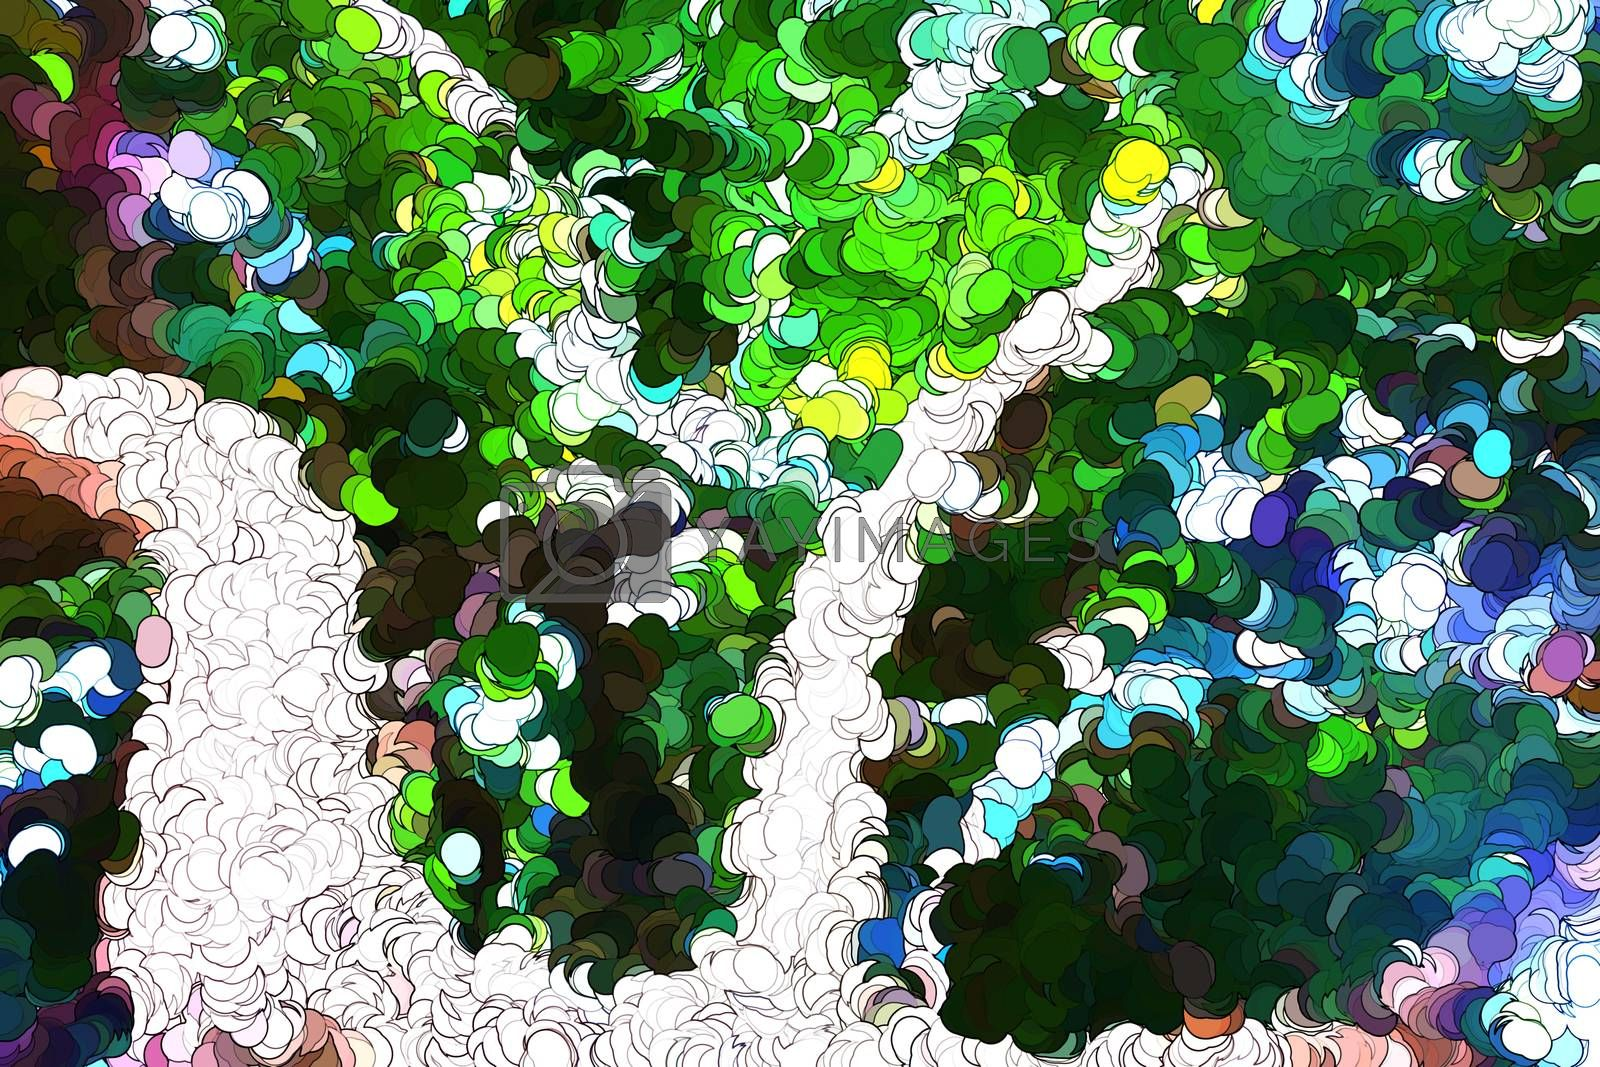 Royalty free image of Tree leaves abstract painting by Nonneljohn